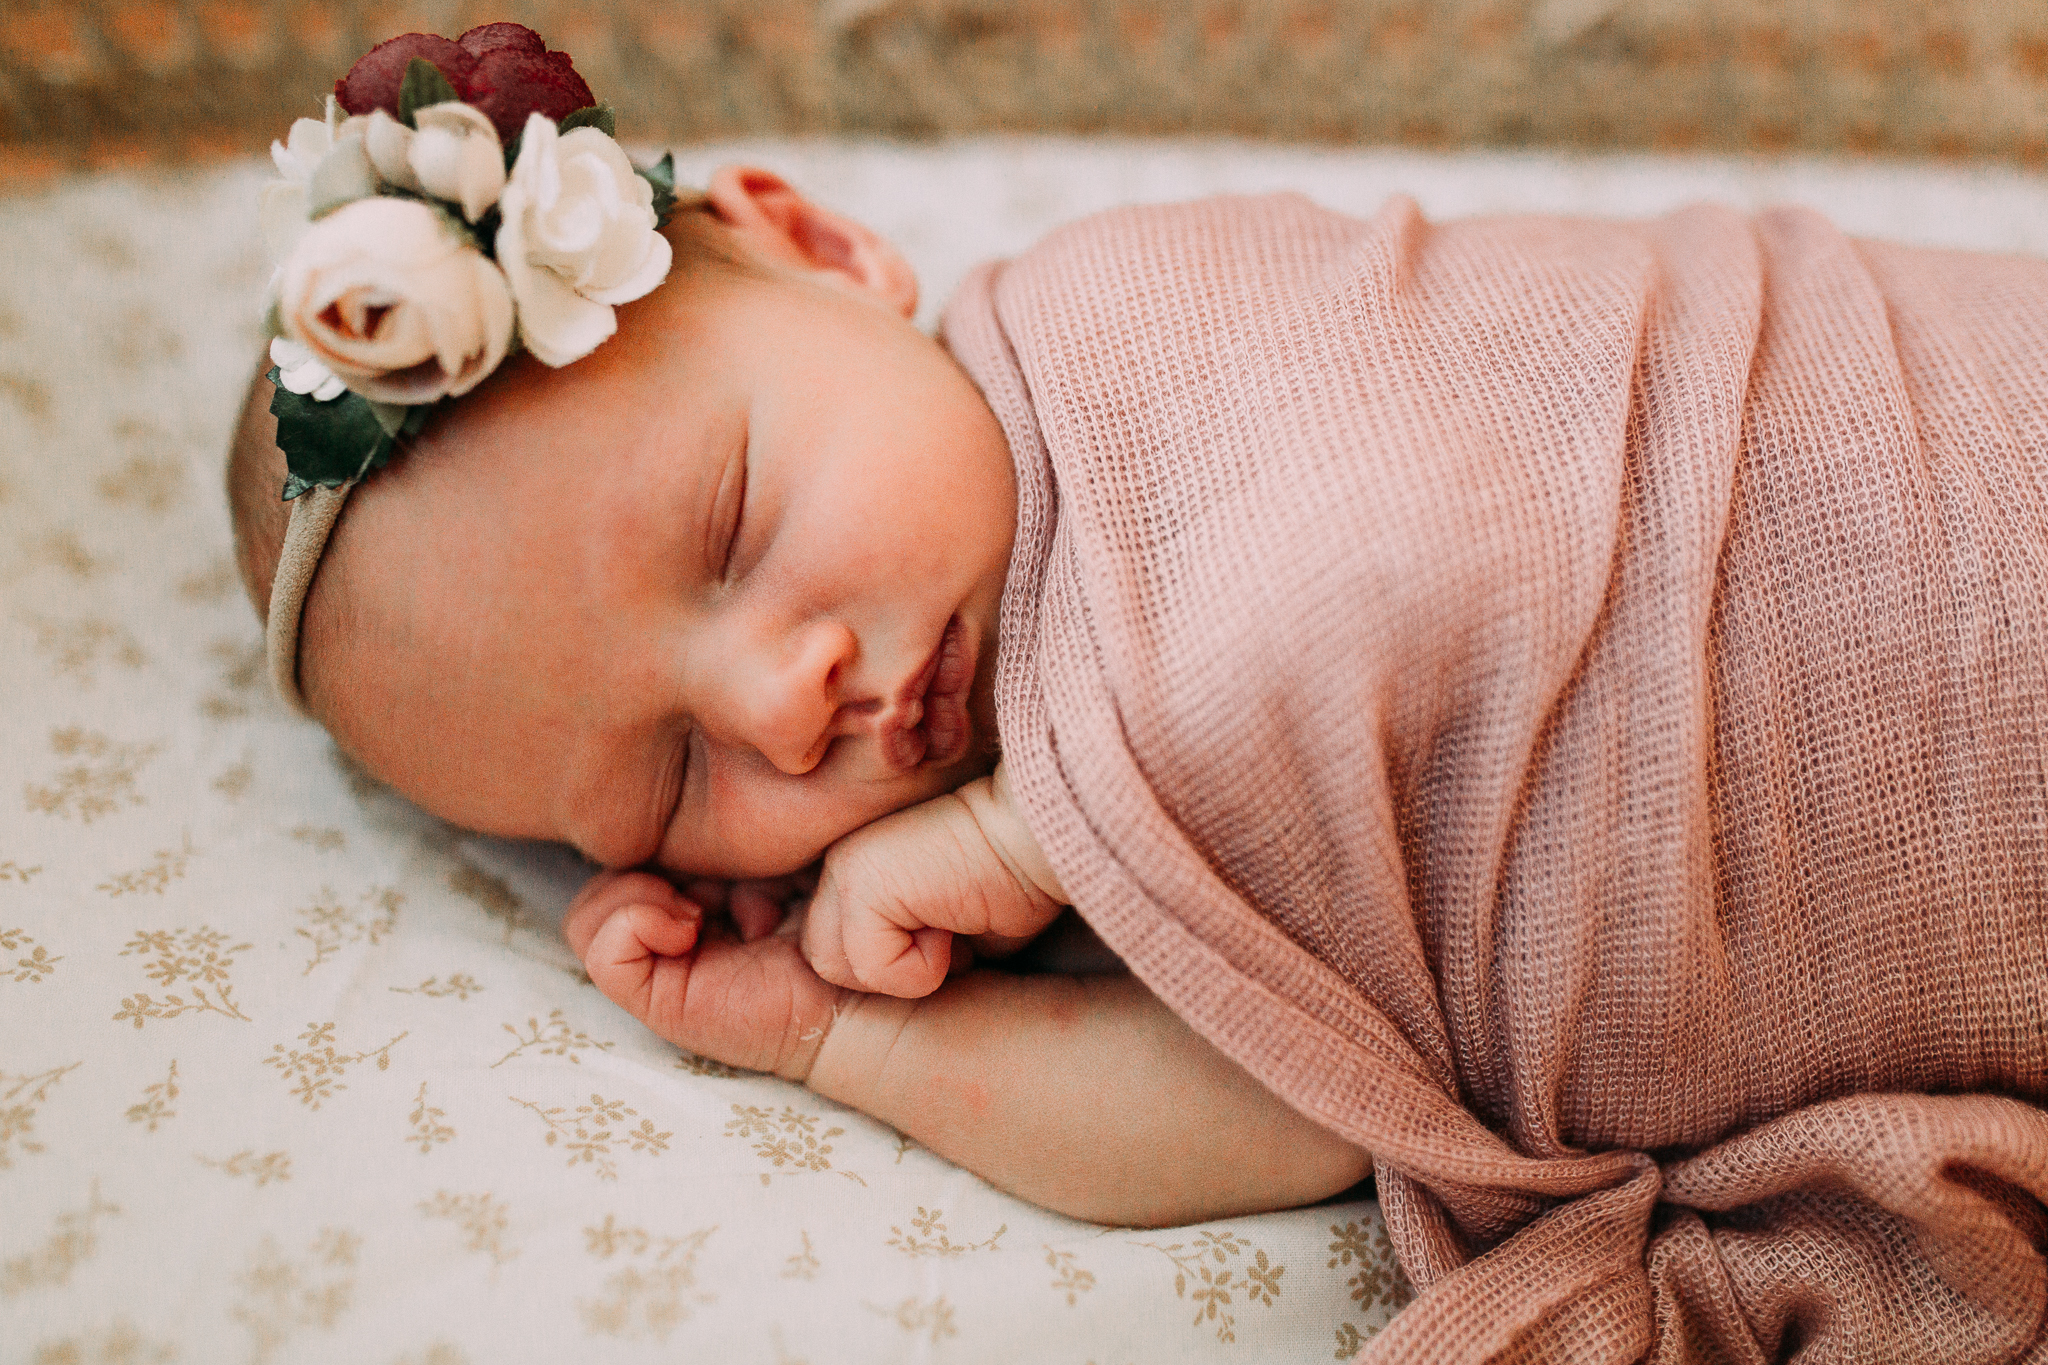 portrait floral headband newborn baby girl lifestyle documentary family Leesburg Loudoun Virginia Marti Austin Photography